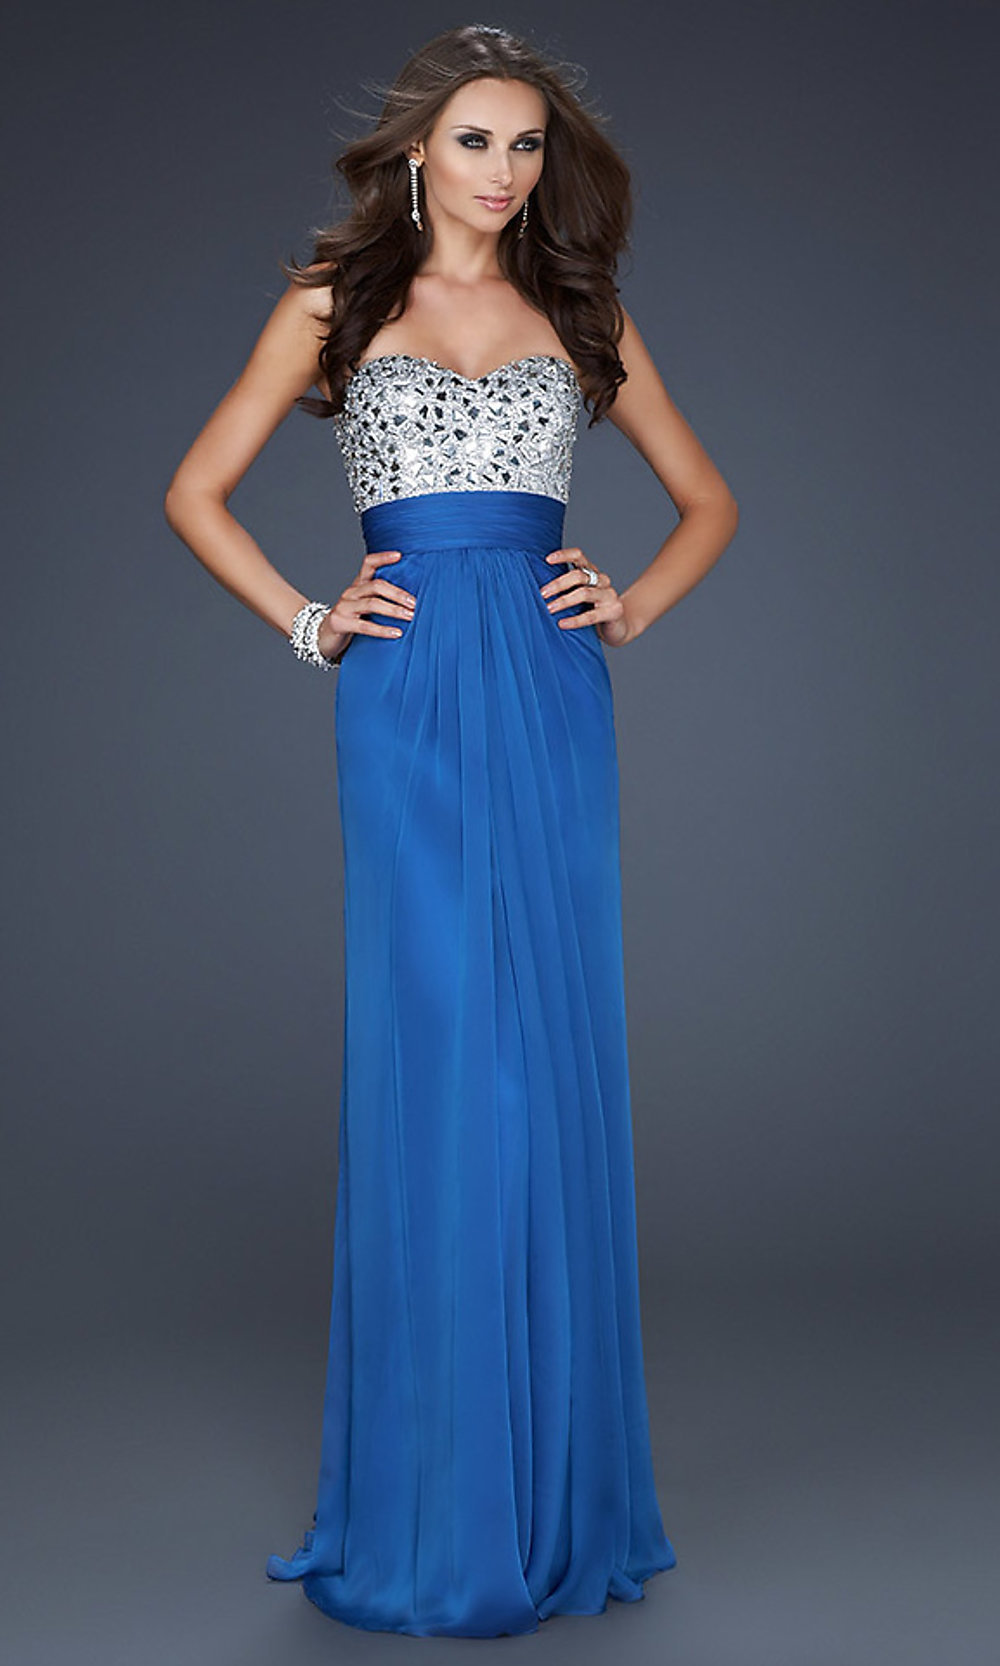 Beaded Strapless Prom Gowns, La Femme Strapless Gowns- PromGirl